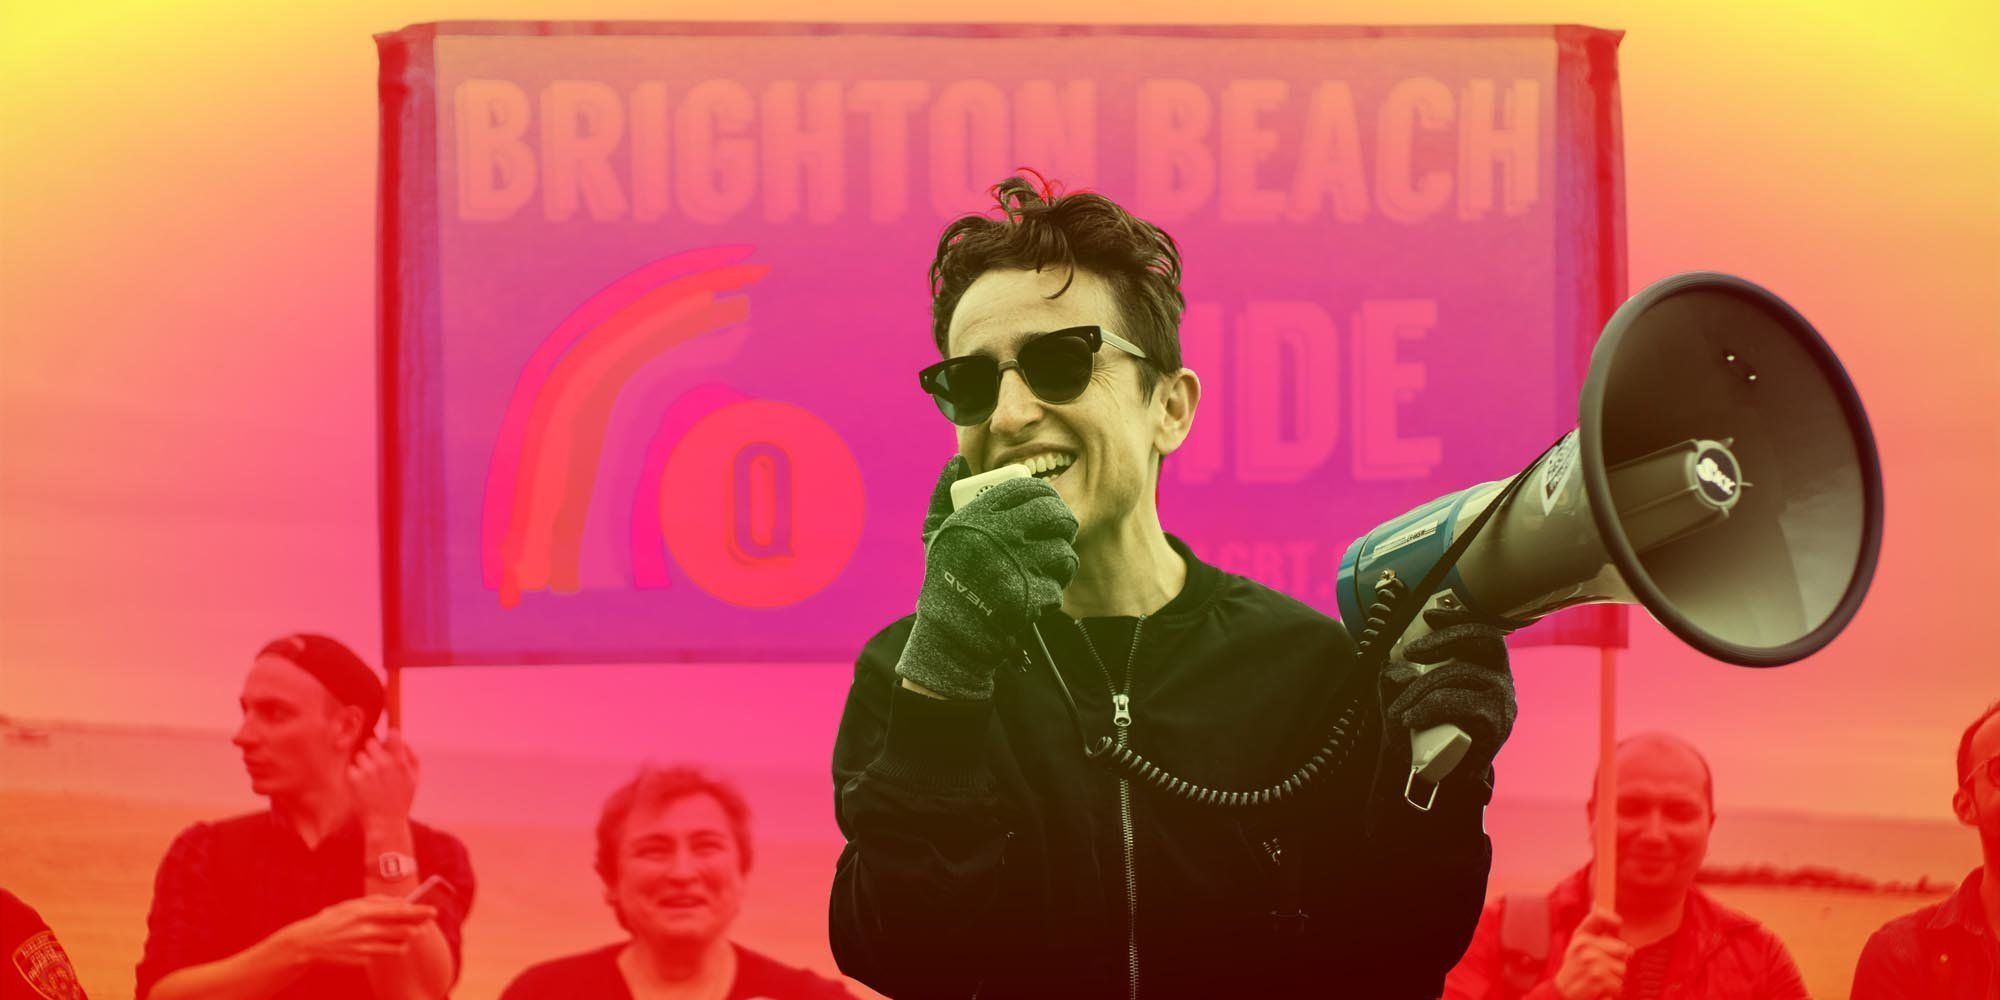 Journalist and activist Masha Gessen speaks at Brighton Beach Pride in 2017. It was the first year for the LGBTQ event i